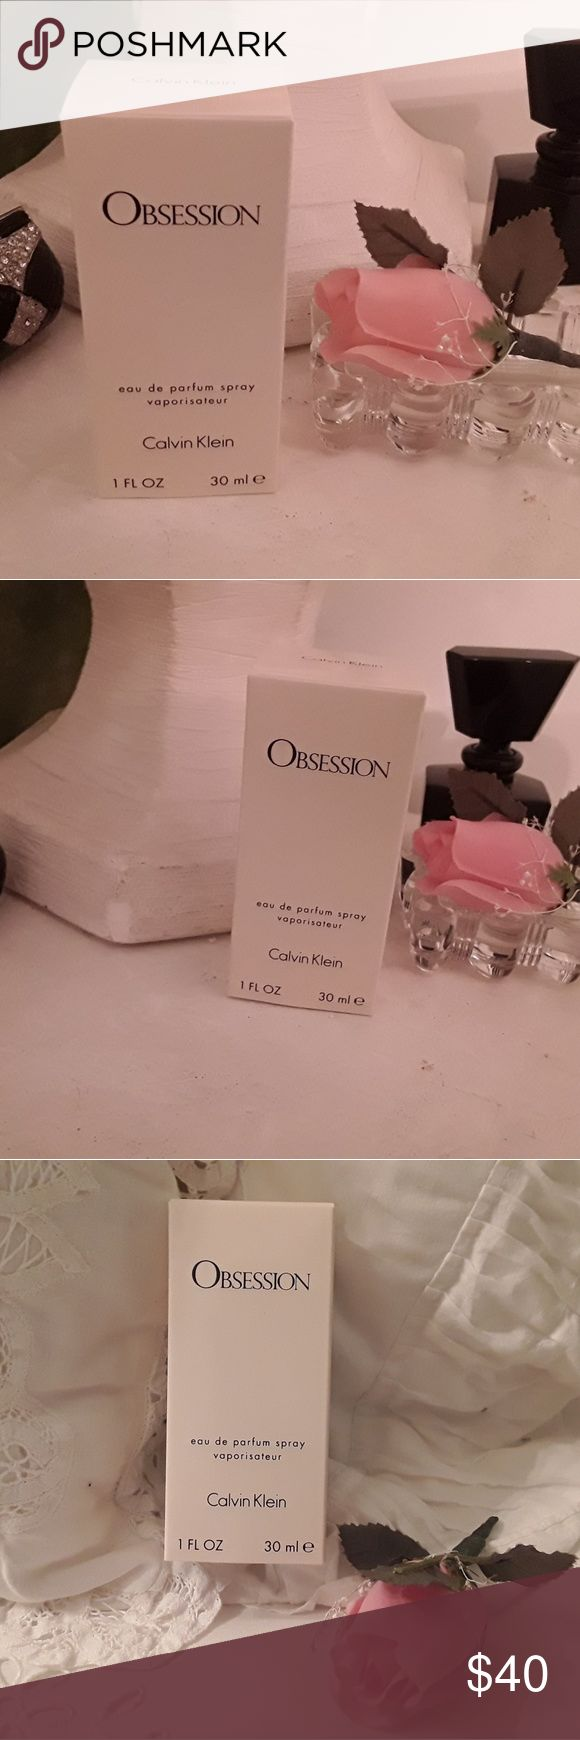 NEW CALVIN KLEIN OBSESSION PARFUM FOR WOMEN, 1FL. I HAVE FOR SALE A NEW NEVER OPENED BOTTLE OF CALVIN KLEIN OBSESSION FOR WOMEN.  IT IS  eau de parfume spray vaporisateur 1 FL. OZ. 30 ml e  THIS is a pure and very sensual fragrance created by the design house of Calvin KLEIN with the perfumer Jean guichard and released in 1985  IF you have any questions about this perfume please ask.  THANKS for shopping my closet. Peggy Calvin Klein Makeup